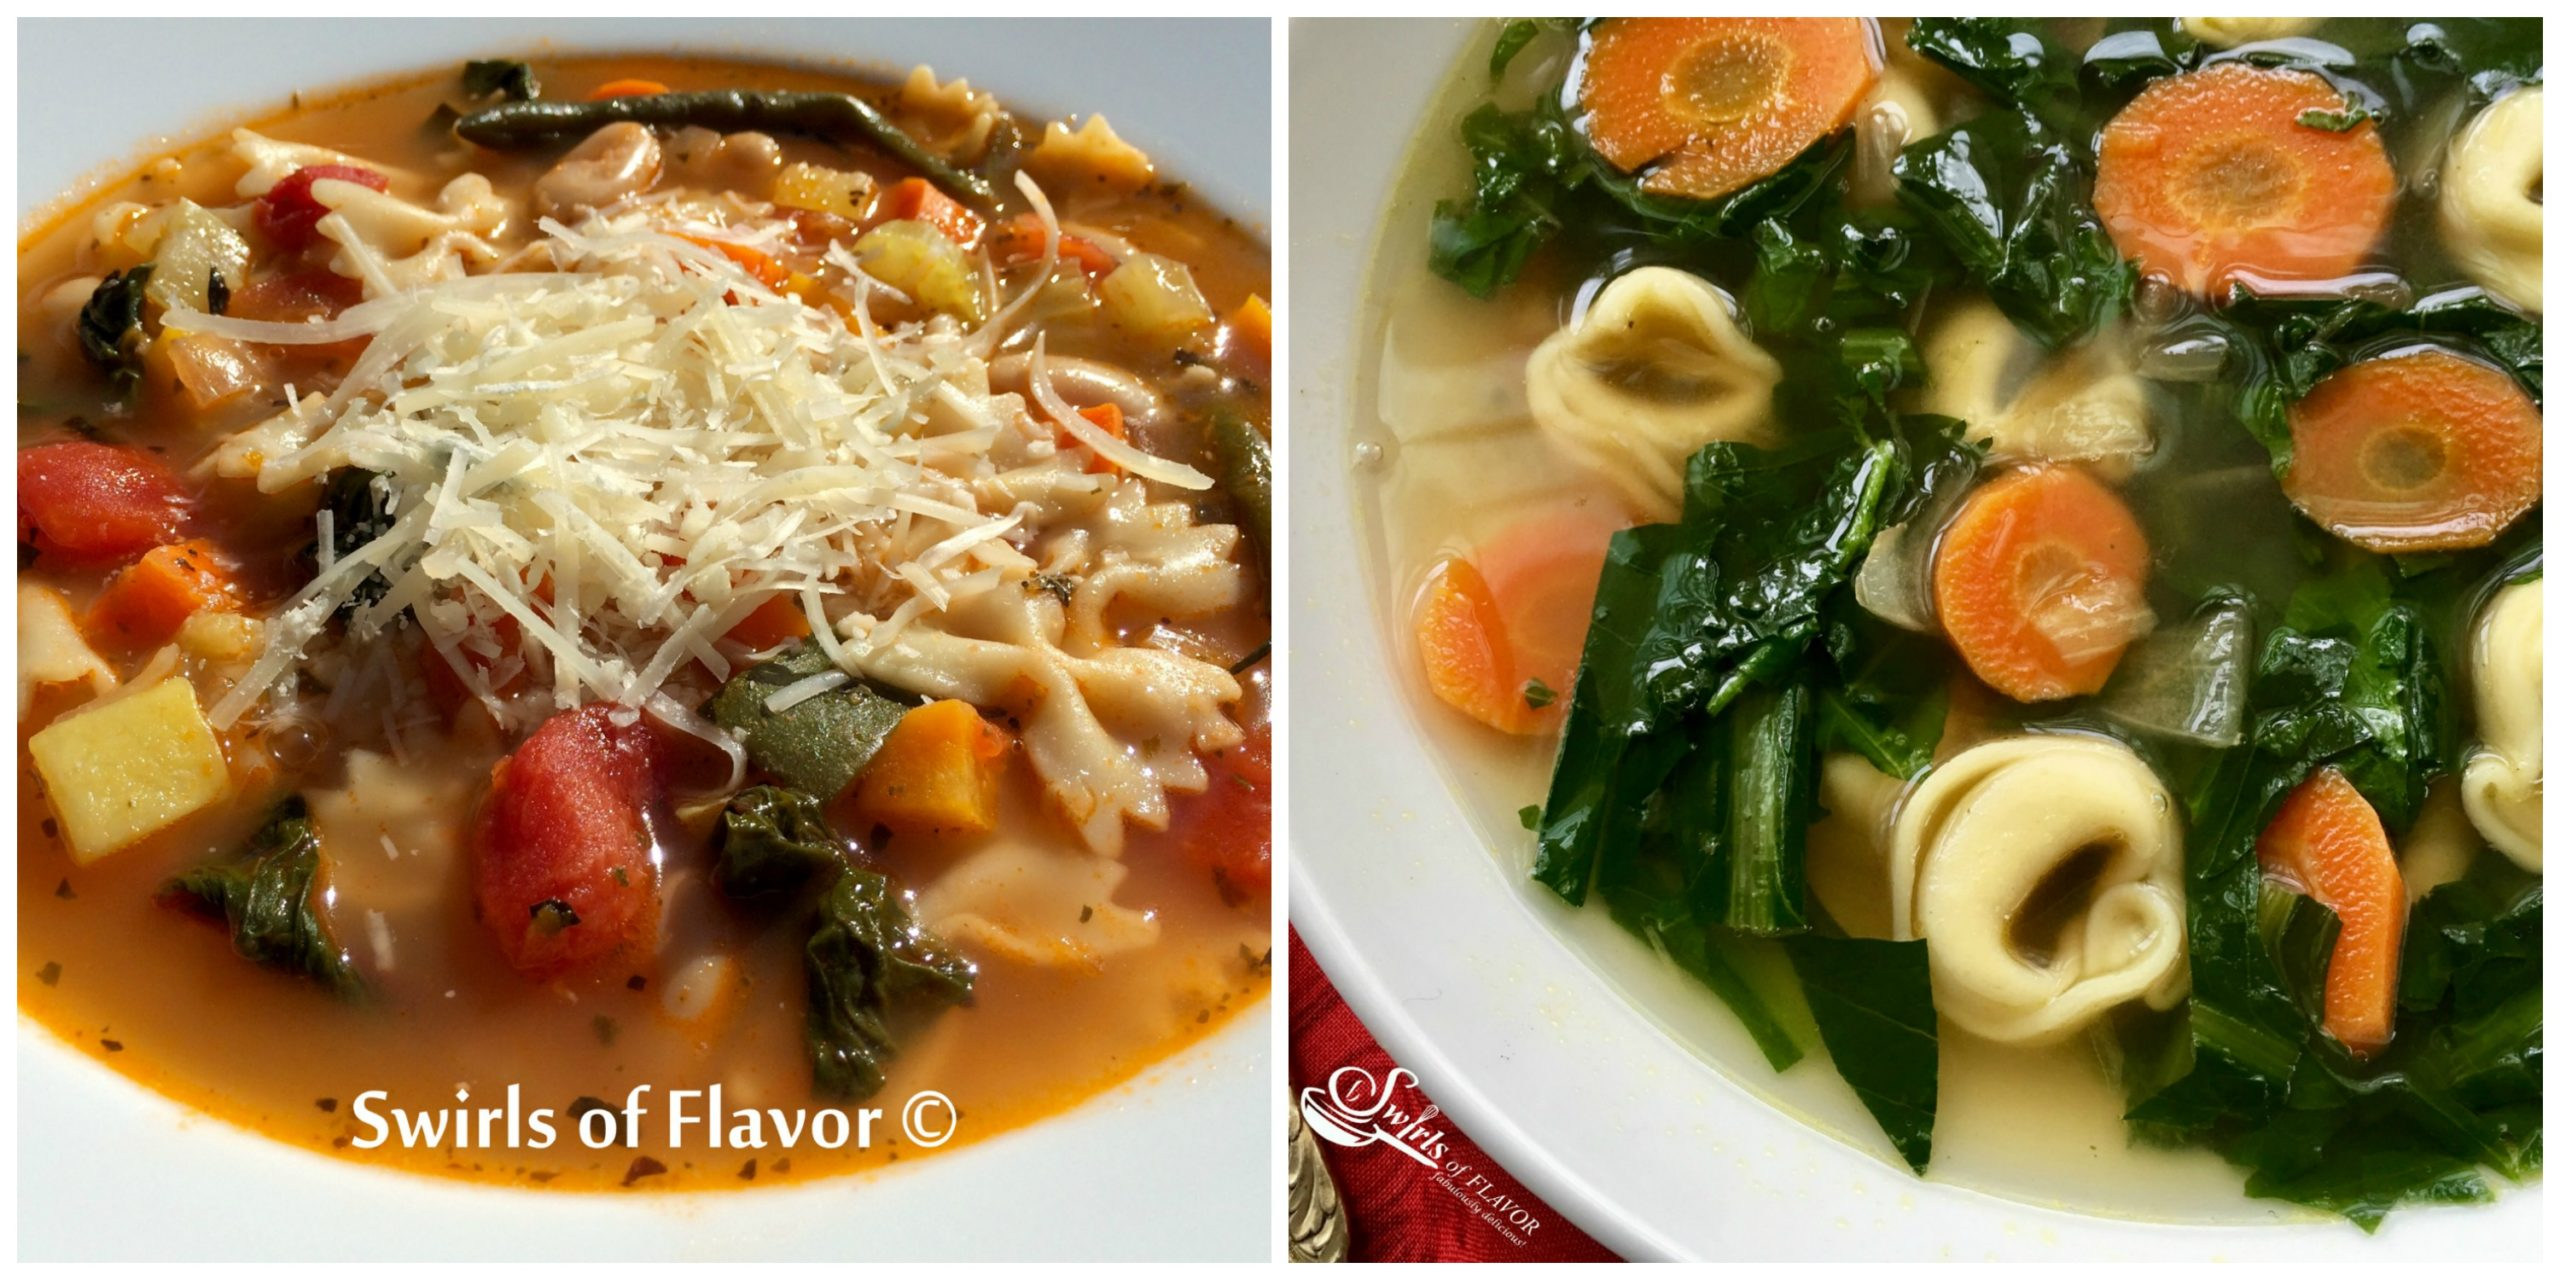 Pesto Minestrone Sup and Dandelion Soup